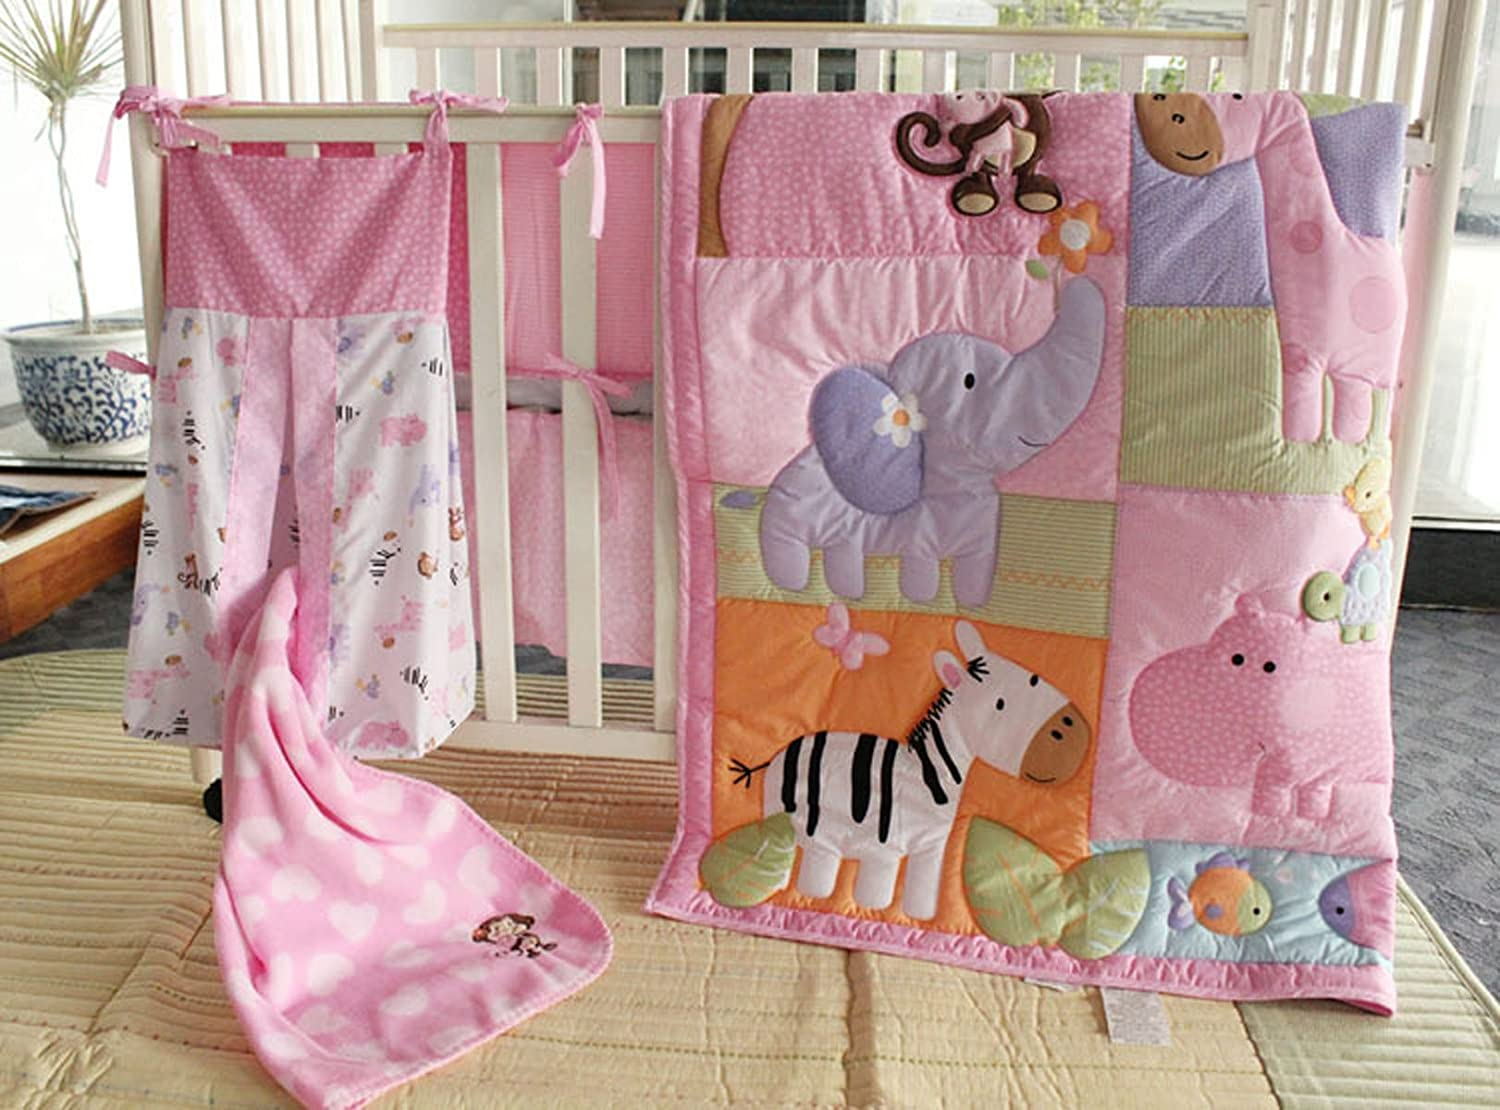 Zebra Animal Cartoon 7 Pcs Baby Bedding Set Baby Bedding Set Cartoon Baby Crib Set Quilt Bumper Sheet Skirt Mother & Kids